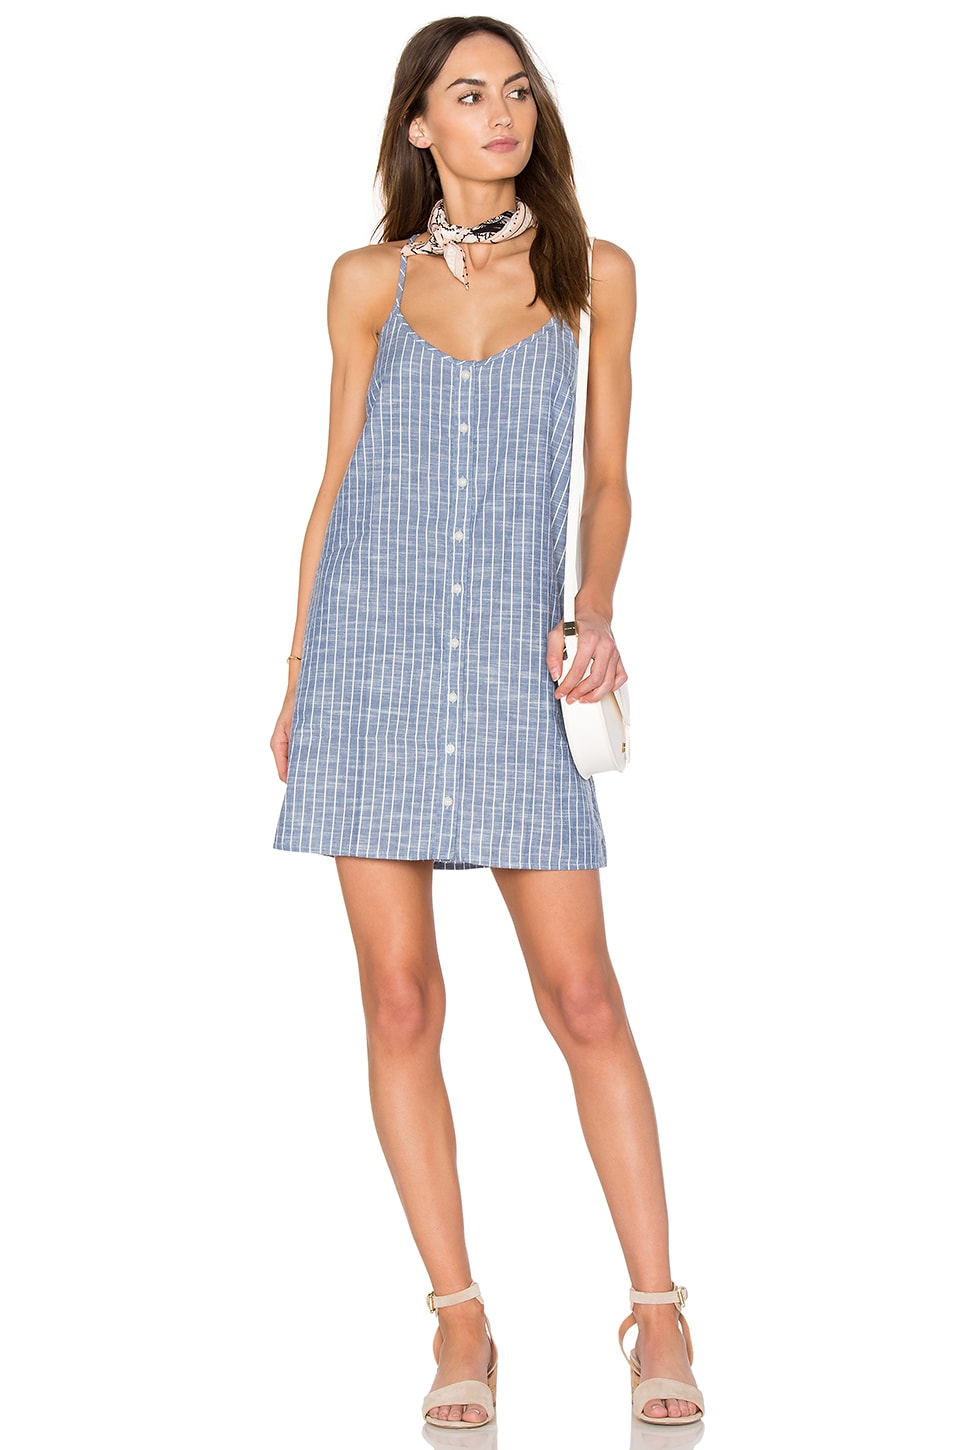 Obey Sanders Dress in Chambray Multi